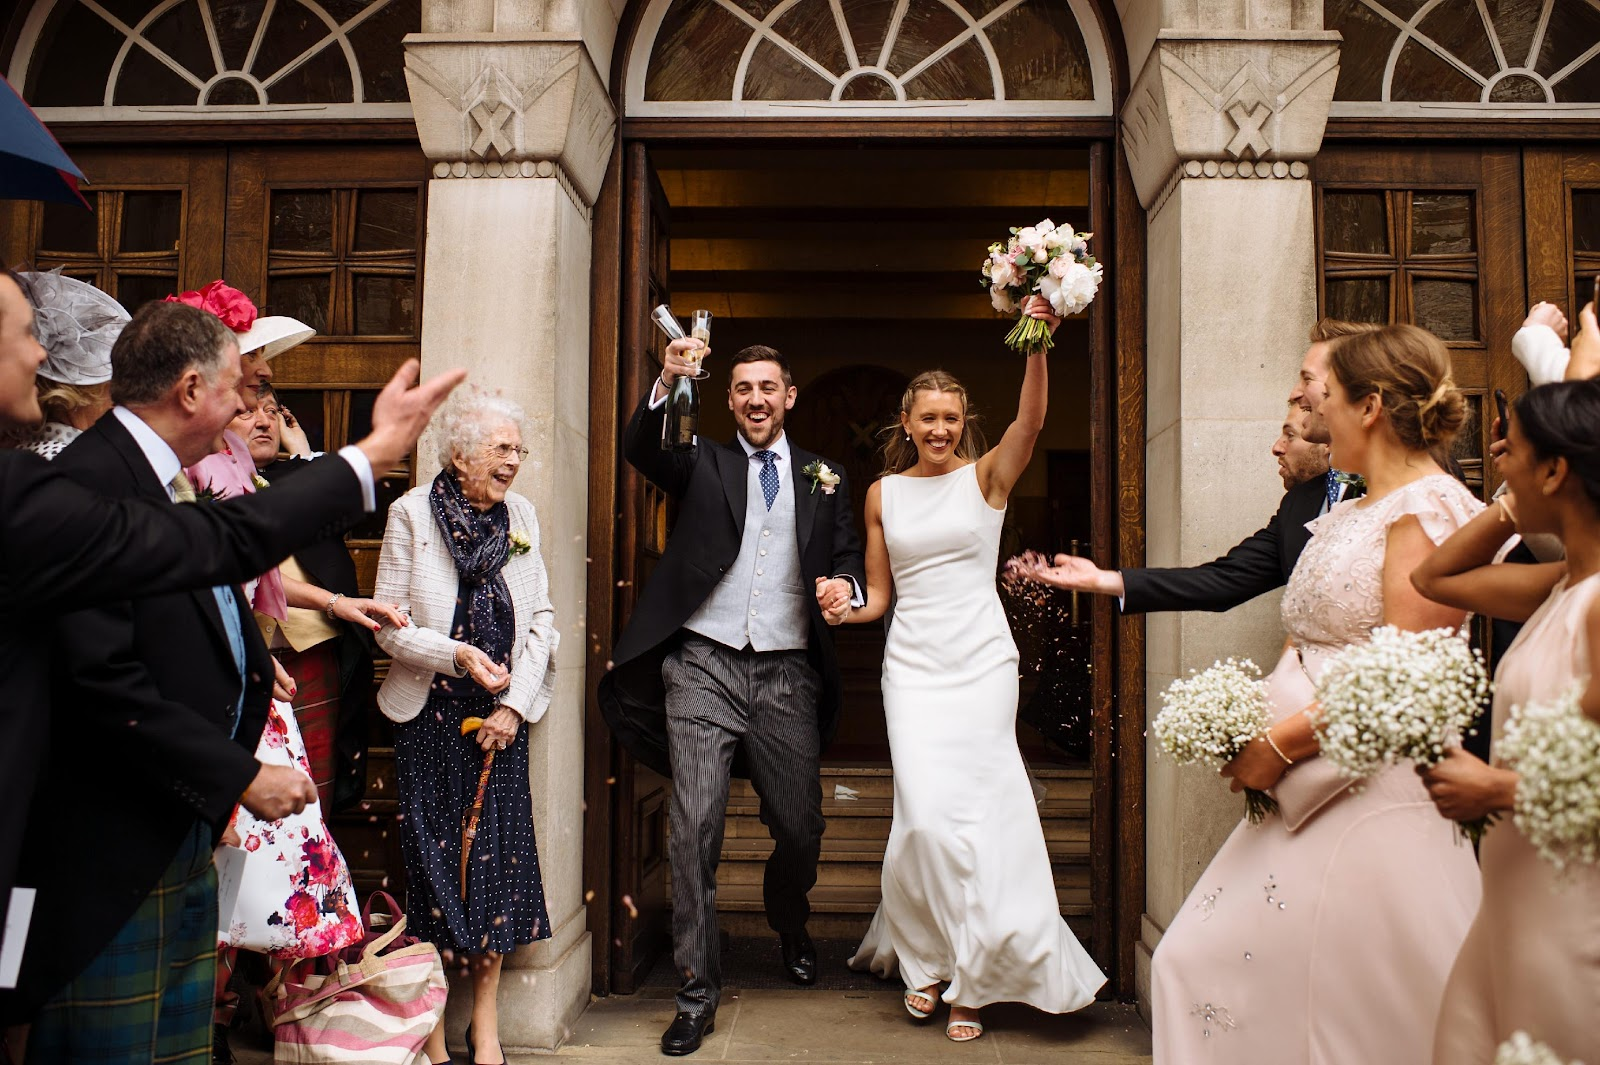 Macintosh HD:Users:Matt:Dropbox:Matthew Scott - Photos:Website:Blog Posts:2019:How to get the best from your wedding photography:Fenella-&-Henry-MS1_3983.jpg